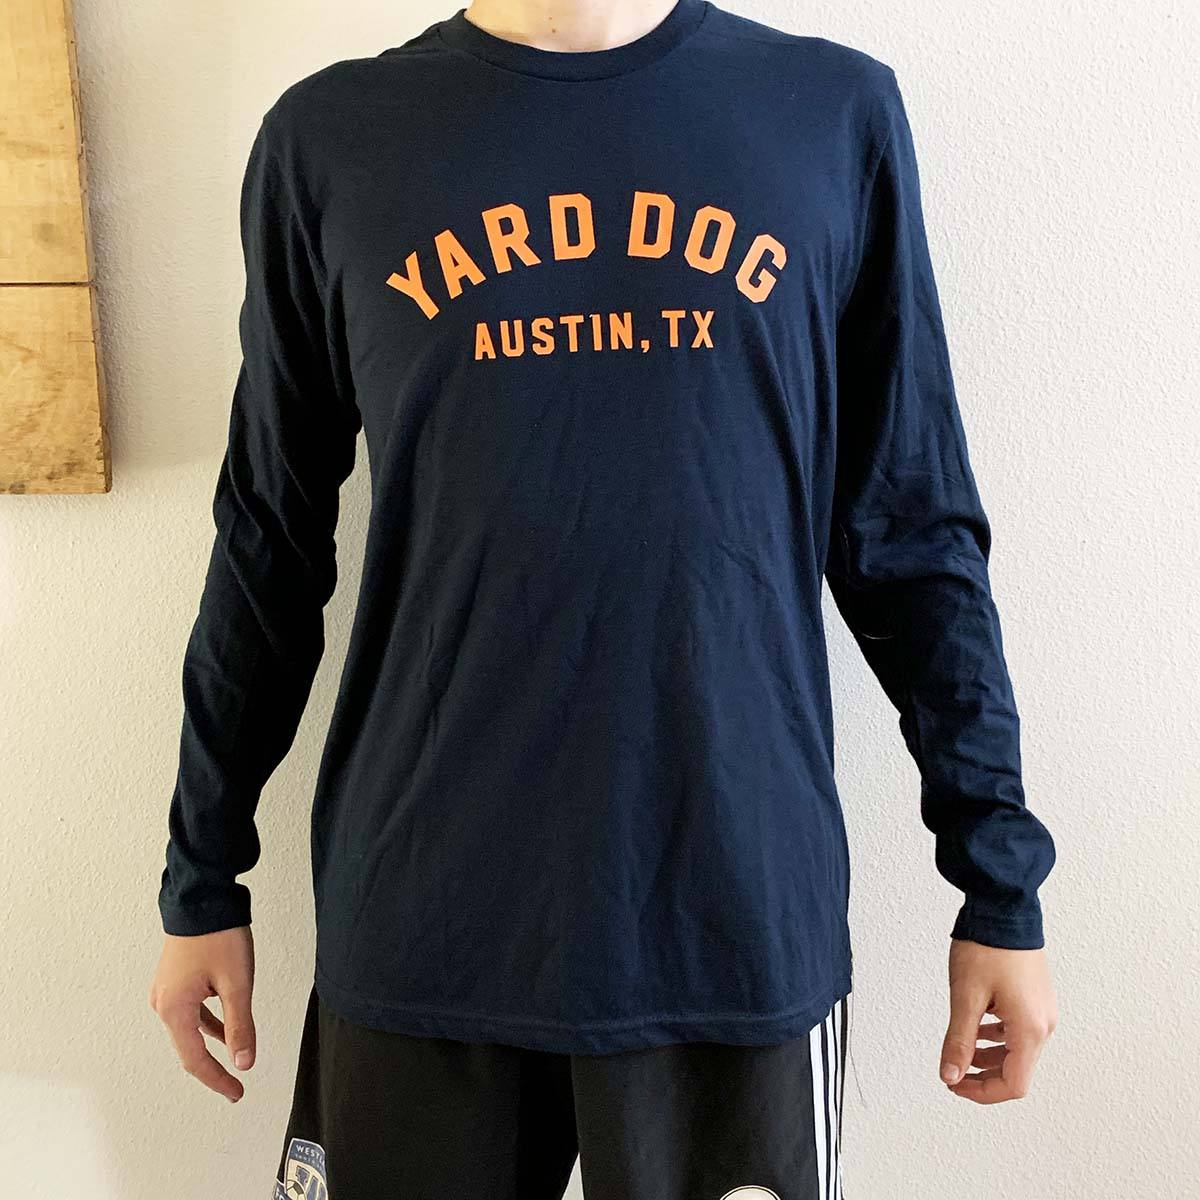 Yard Dog Austin TX Long Sleeve  Tee Shirt - Yard Dog - Yard Dog Art